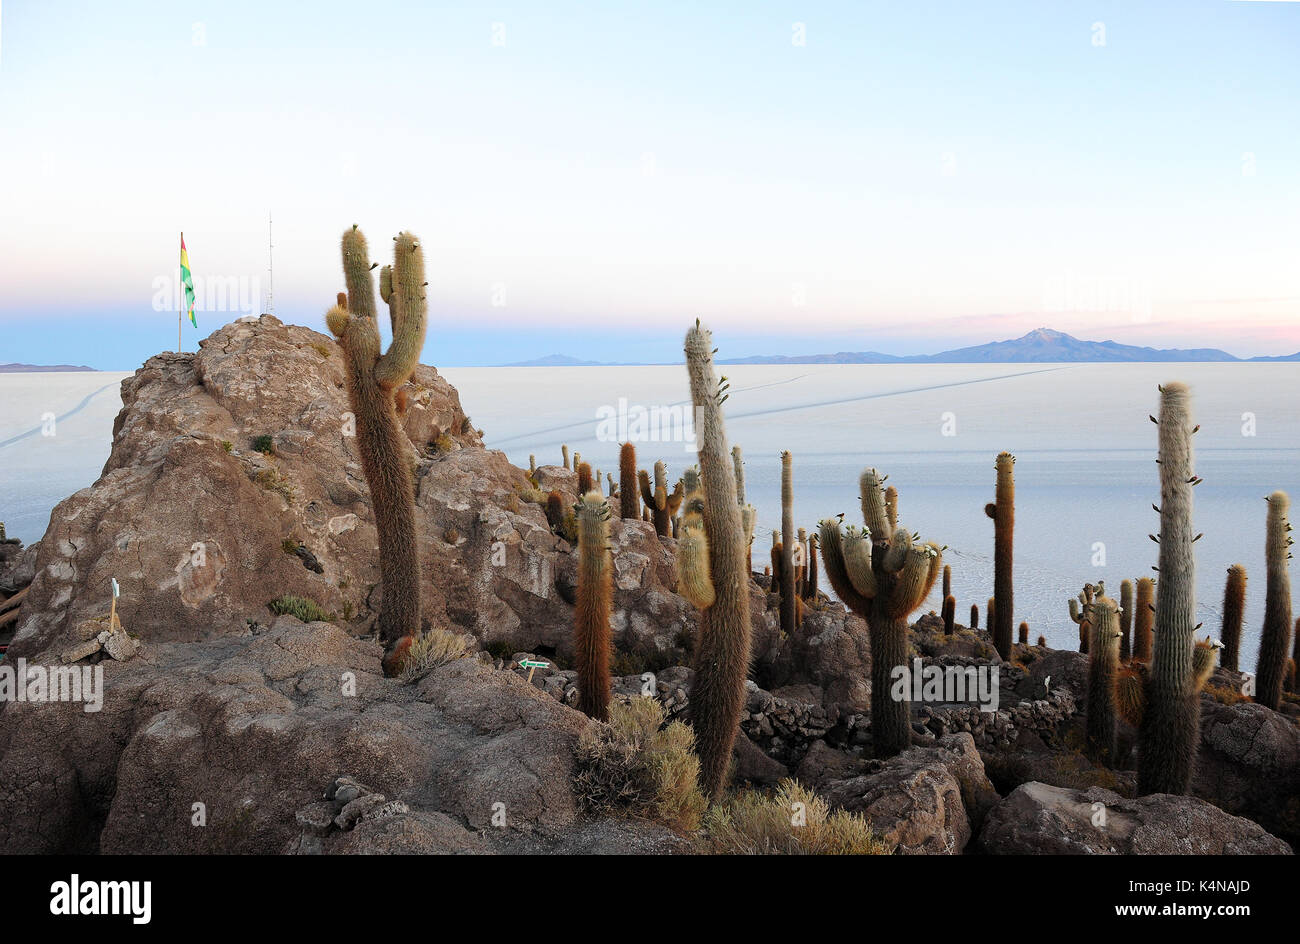 Sunrise view of the Salar de Uyuni from the Isla del Pescado, a hilly and rocky outcrop of land in the middle of the salt flats - Stock Image